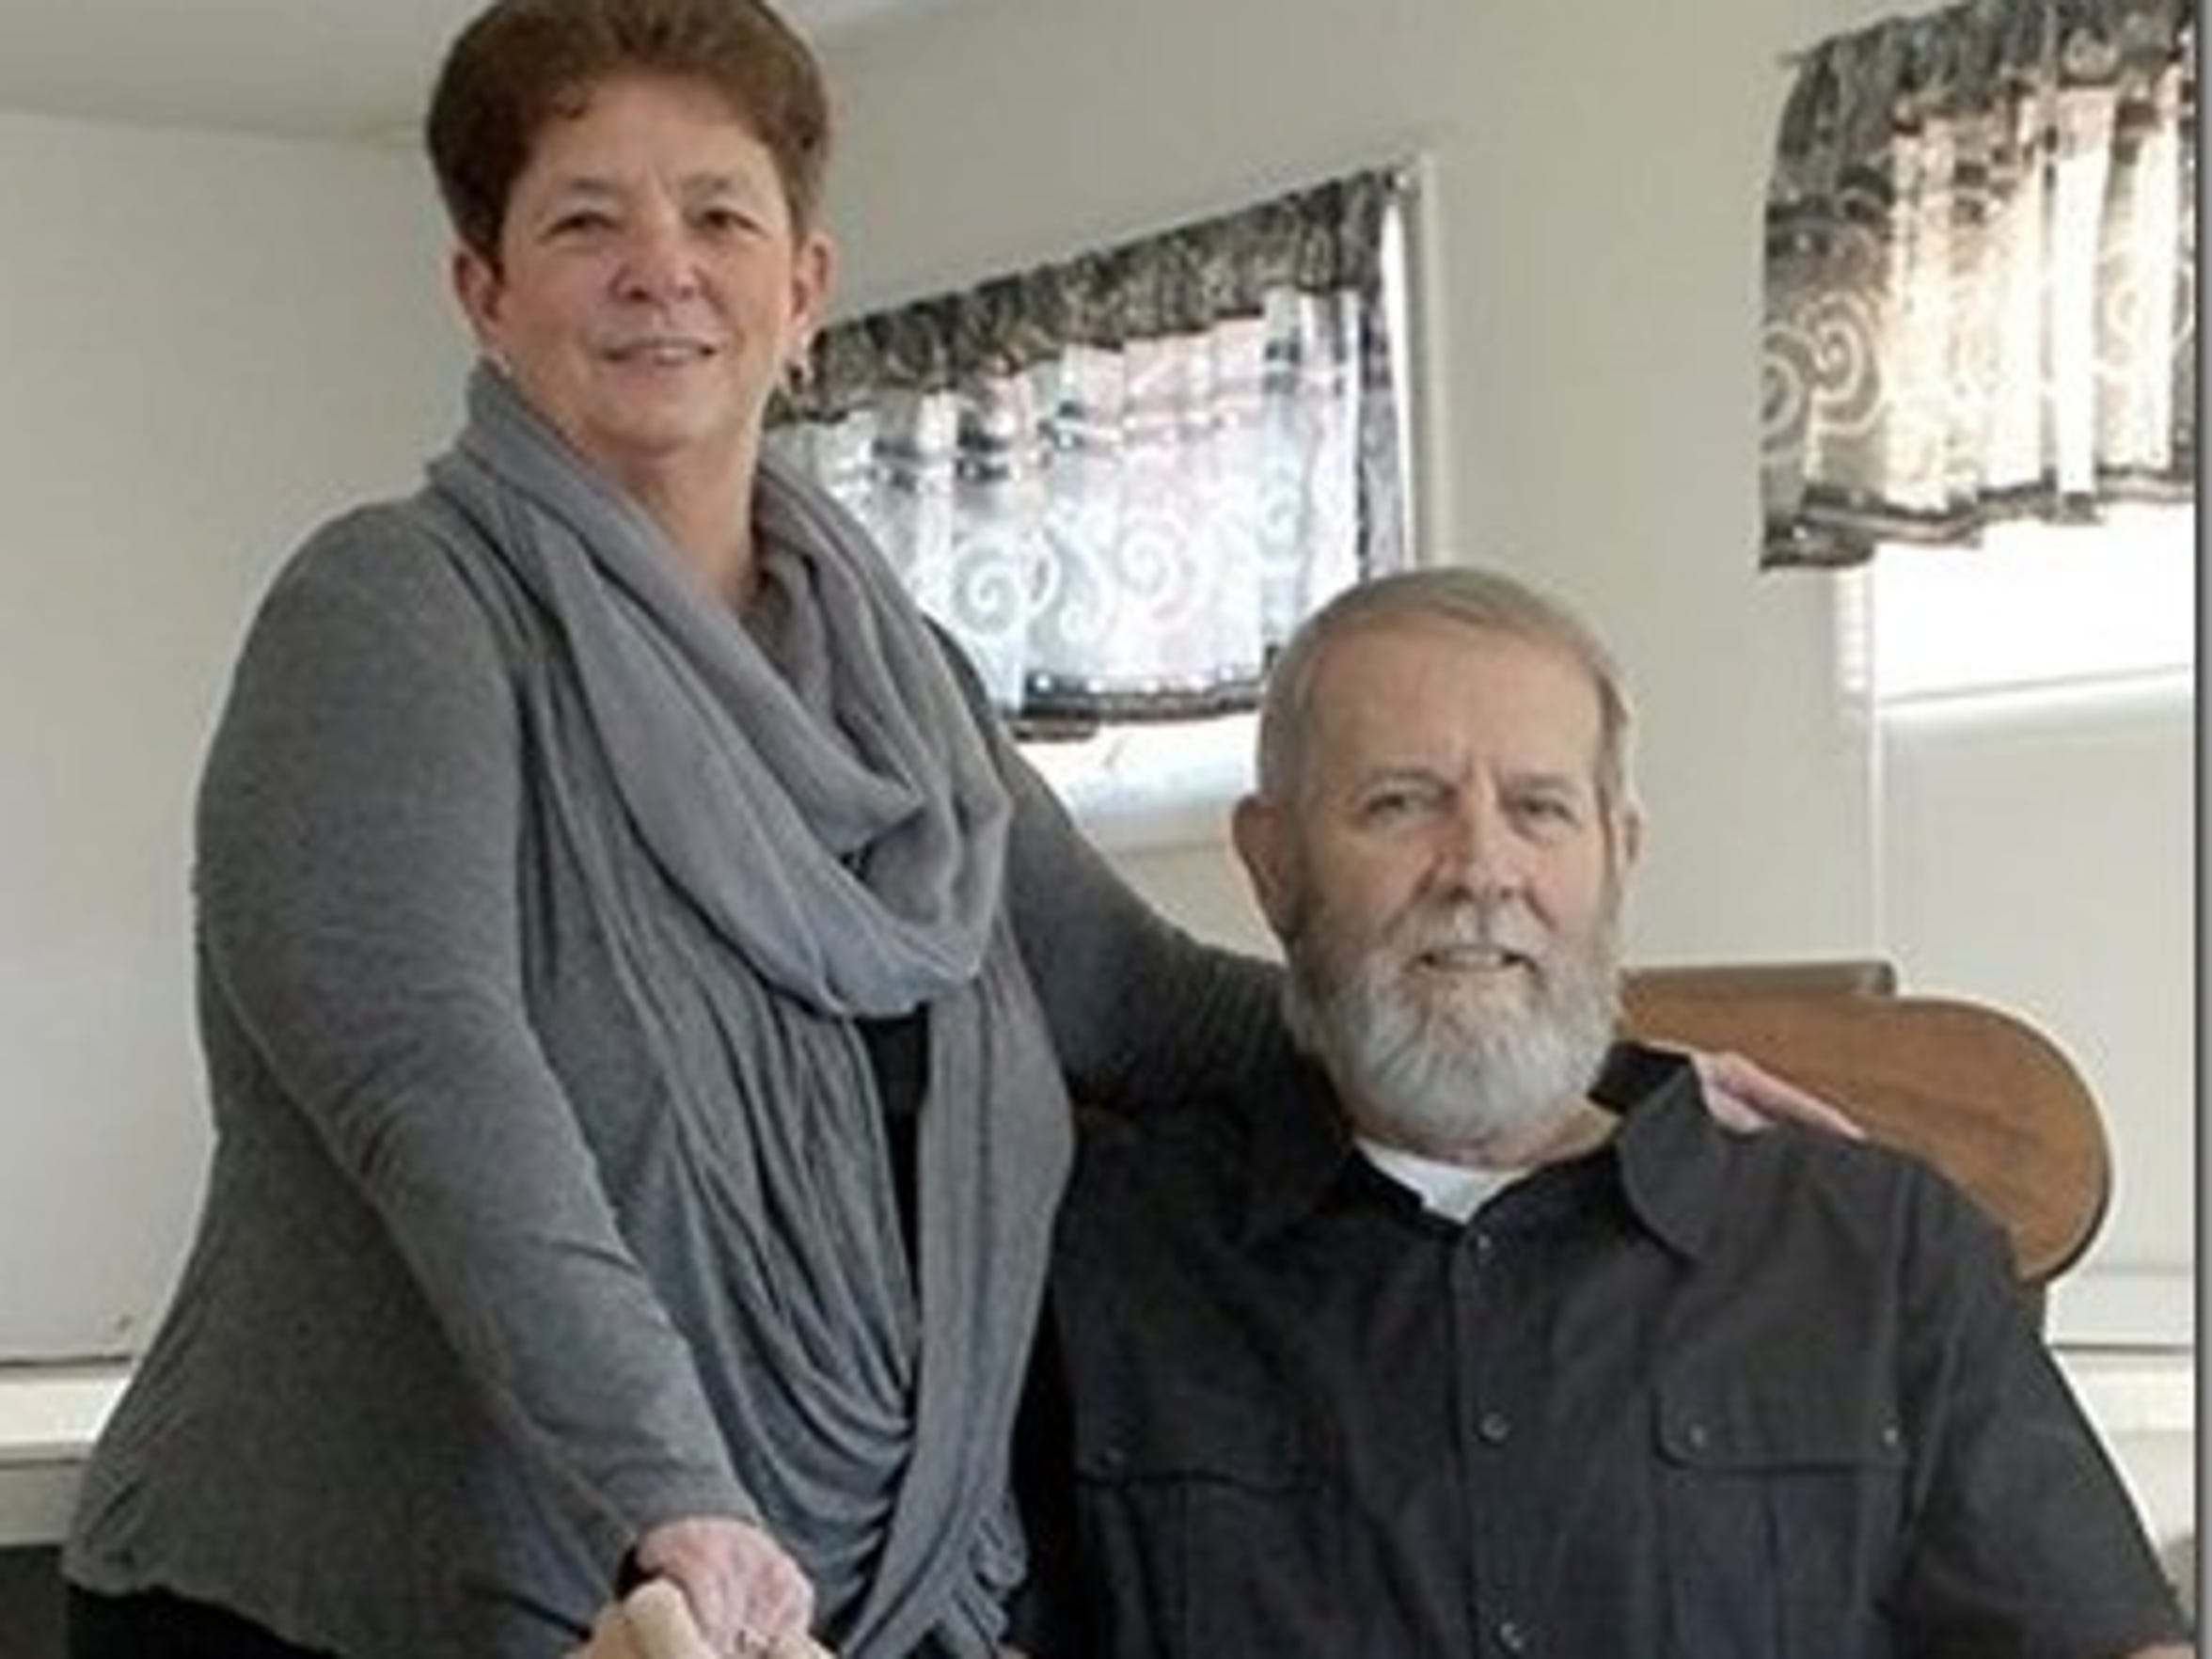 Jerry and Debbie Mossman, who have been a couple for 48 years, have been together through sickness and health.